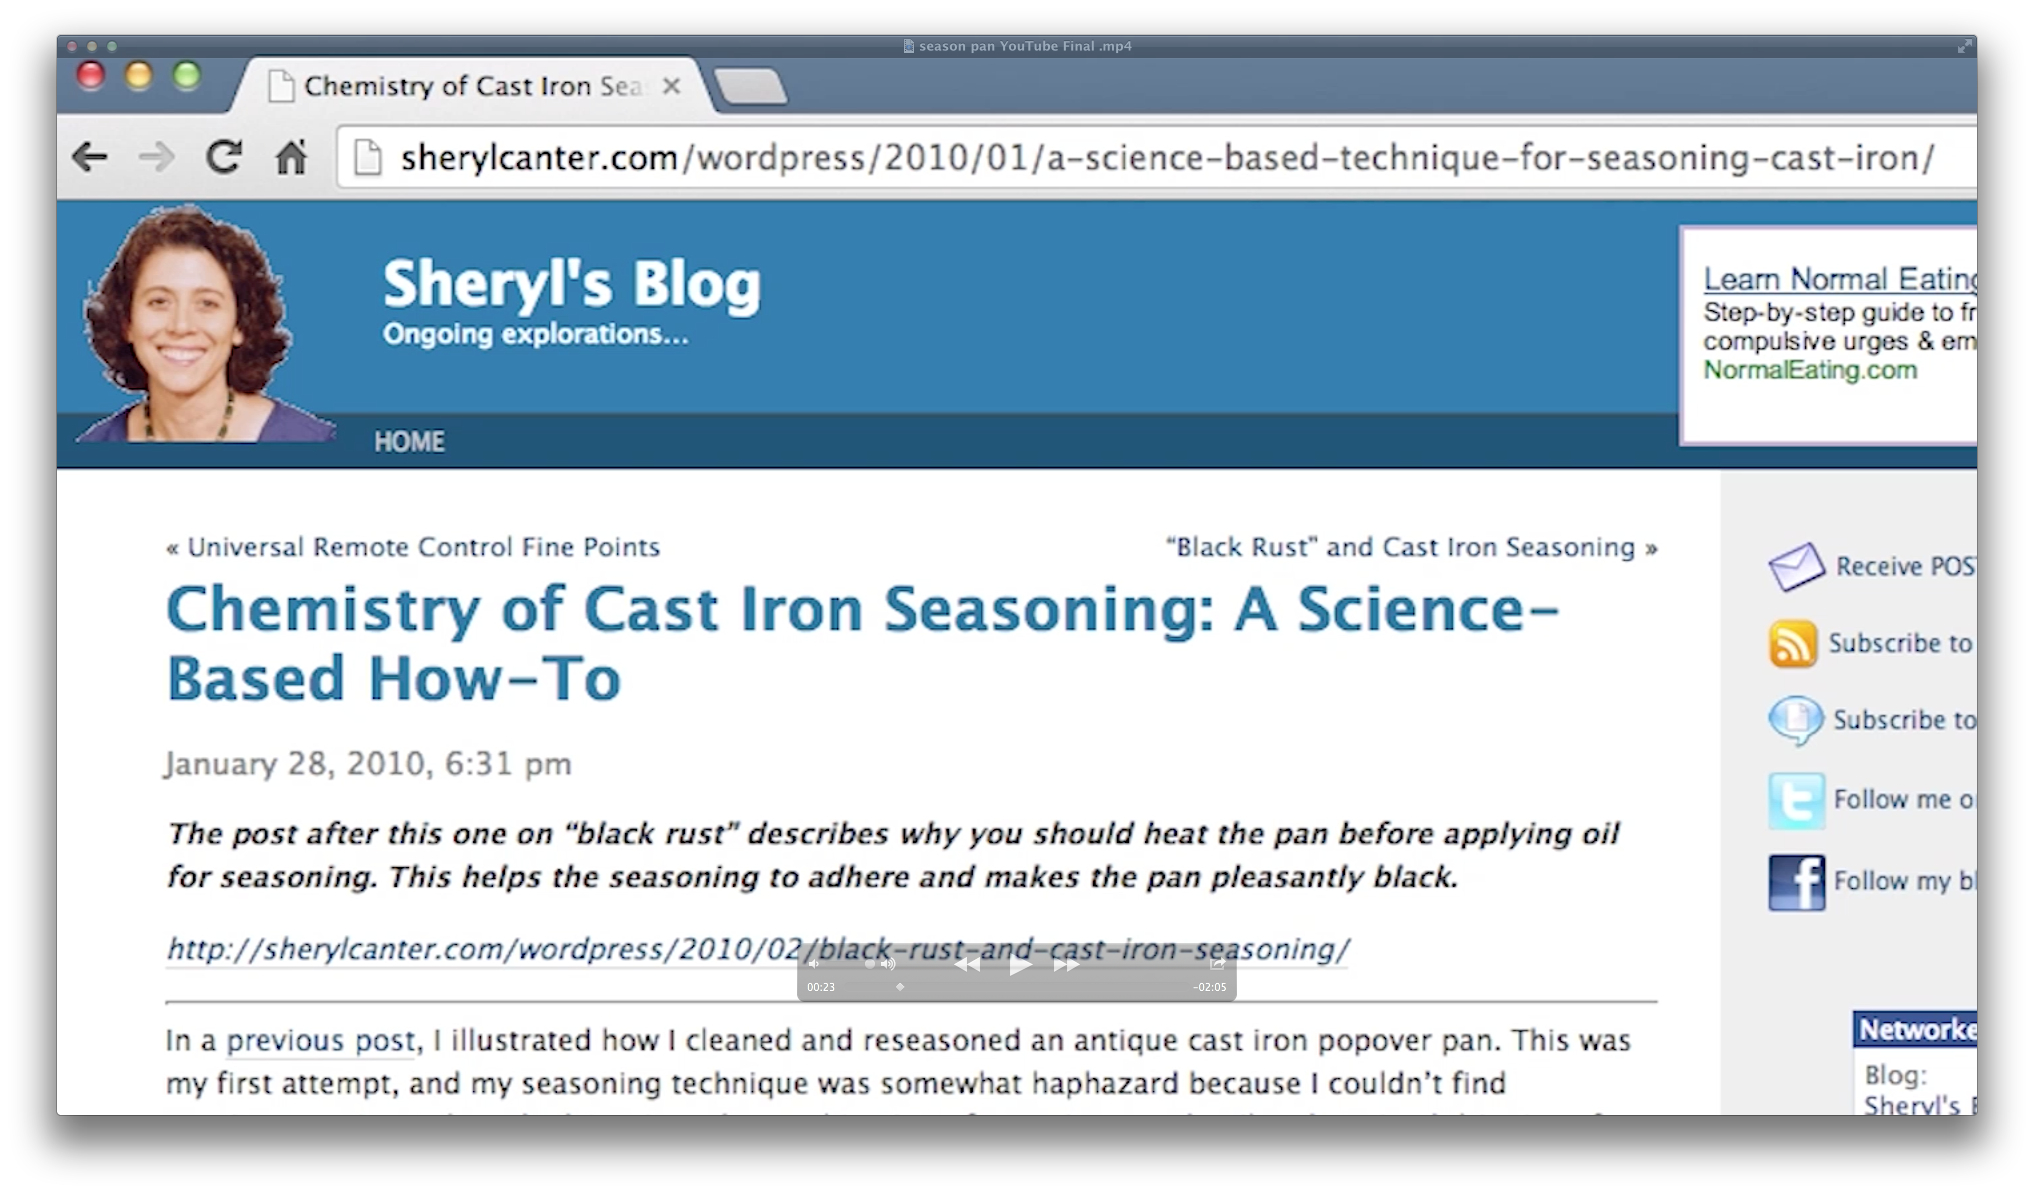 Picture of Chemistry of Cast Iron Seasoning: a Science-Based How-To